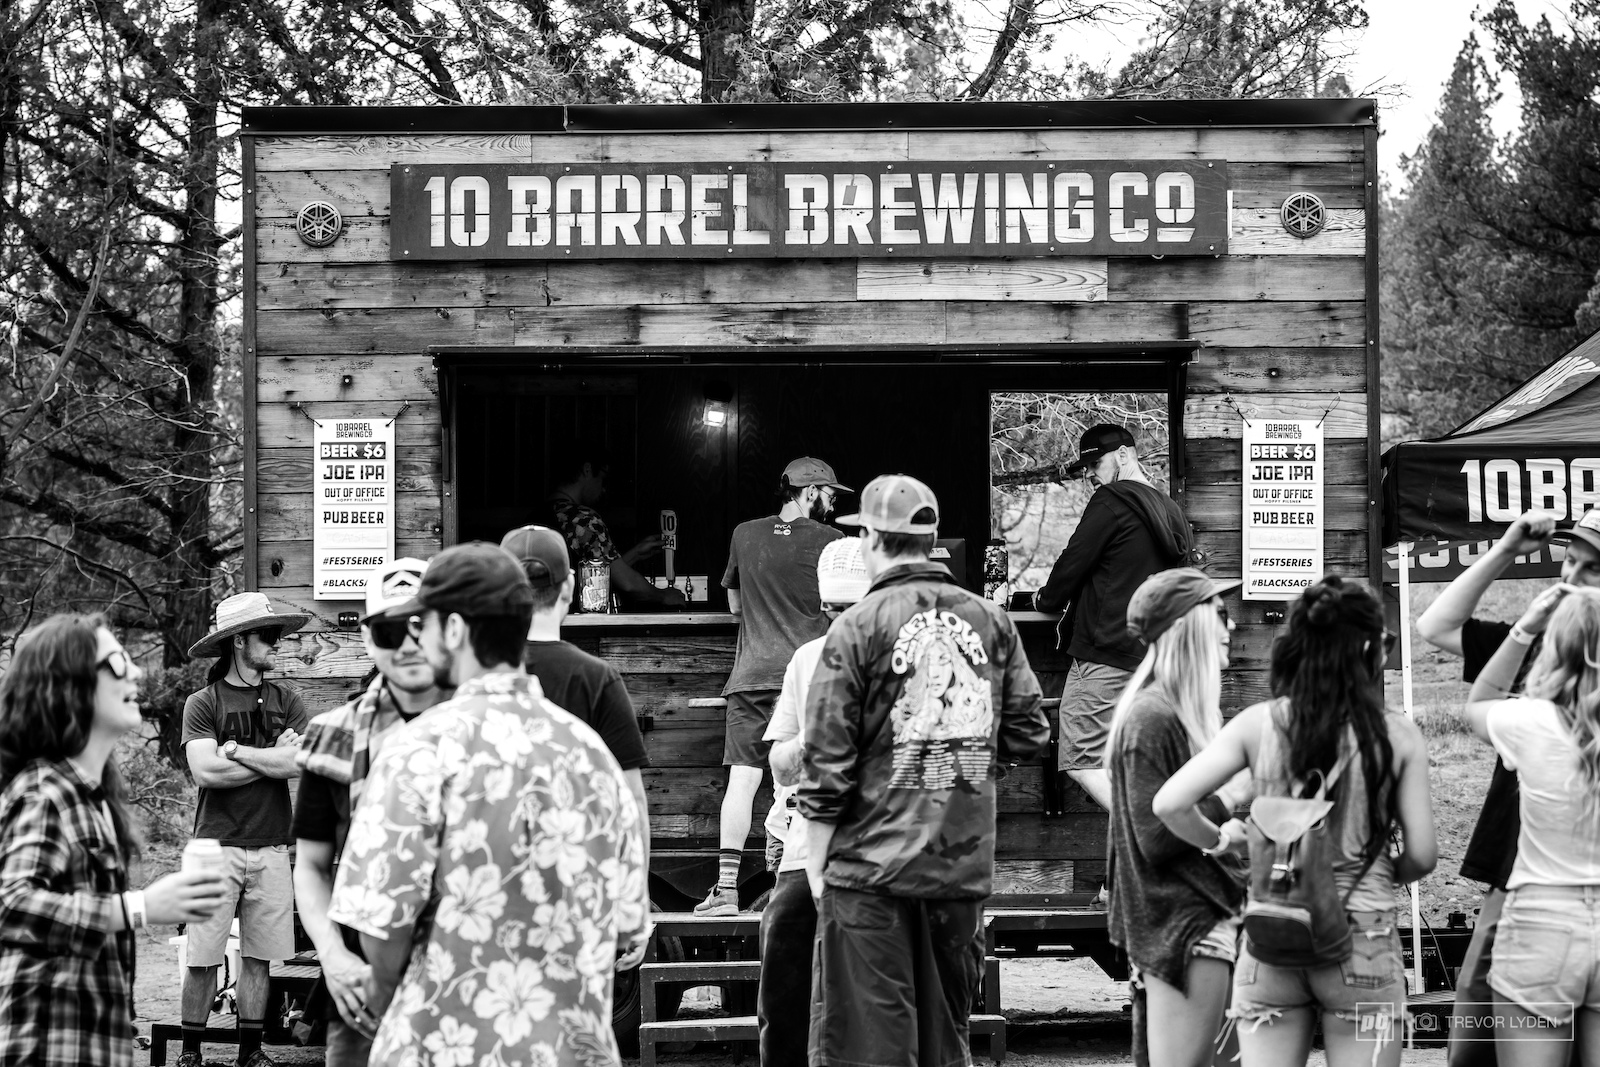 10 Barrel Brewing the title sponsor for the event had their mobile pub pouring ice cold brews all day long.